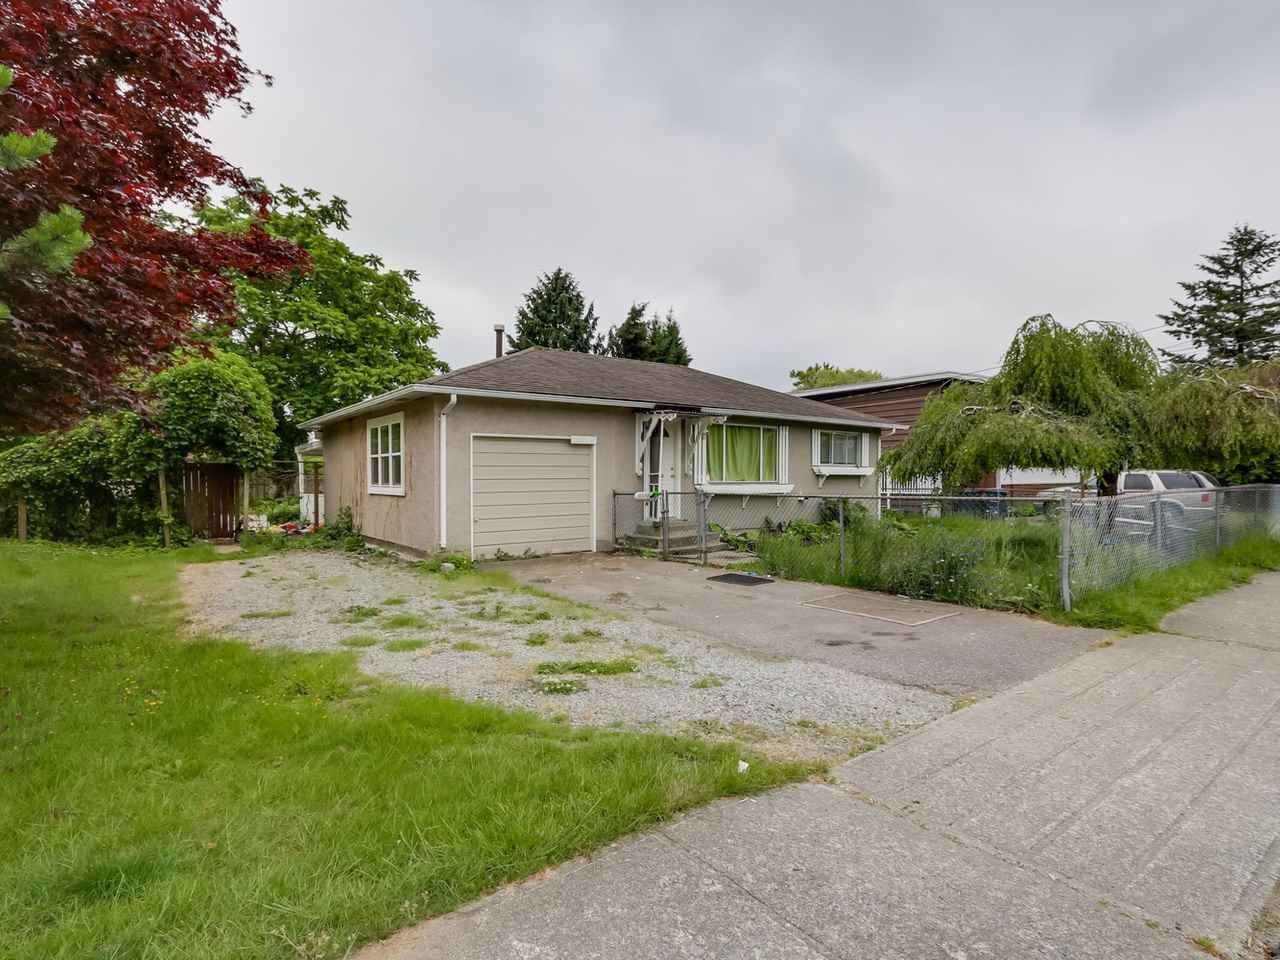 Main Photo: 2156 PRAIRIE AVENUE in Port Coquitlam: Glenwood PQ House for sale : MLS®# R2074707